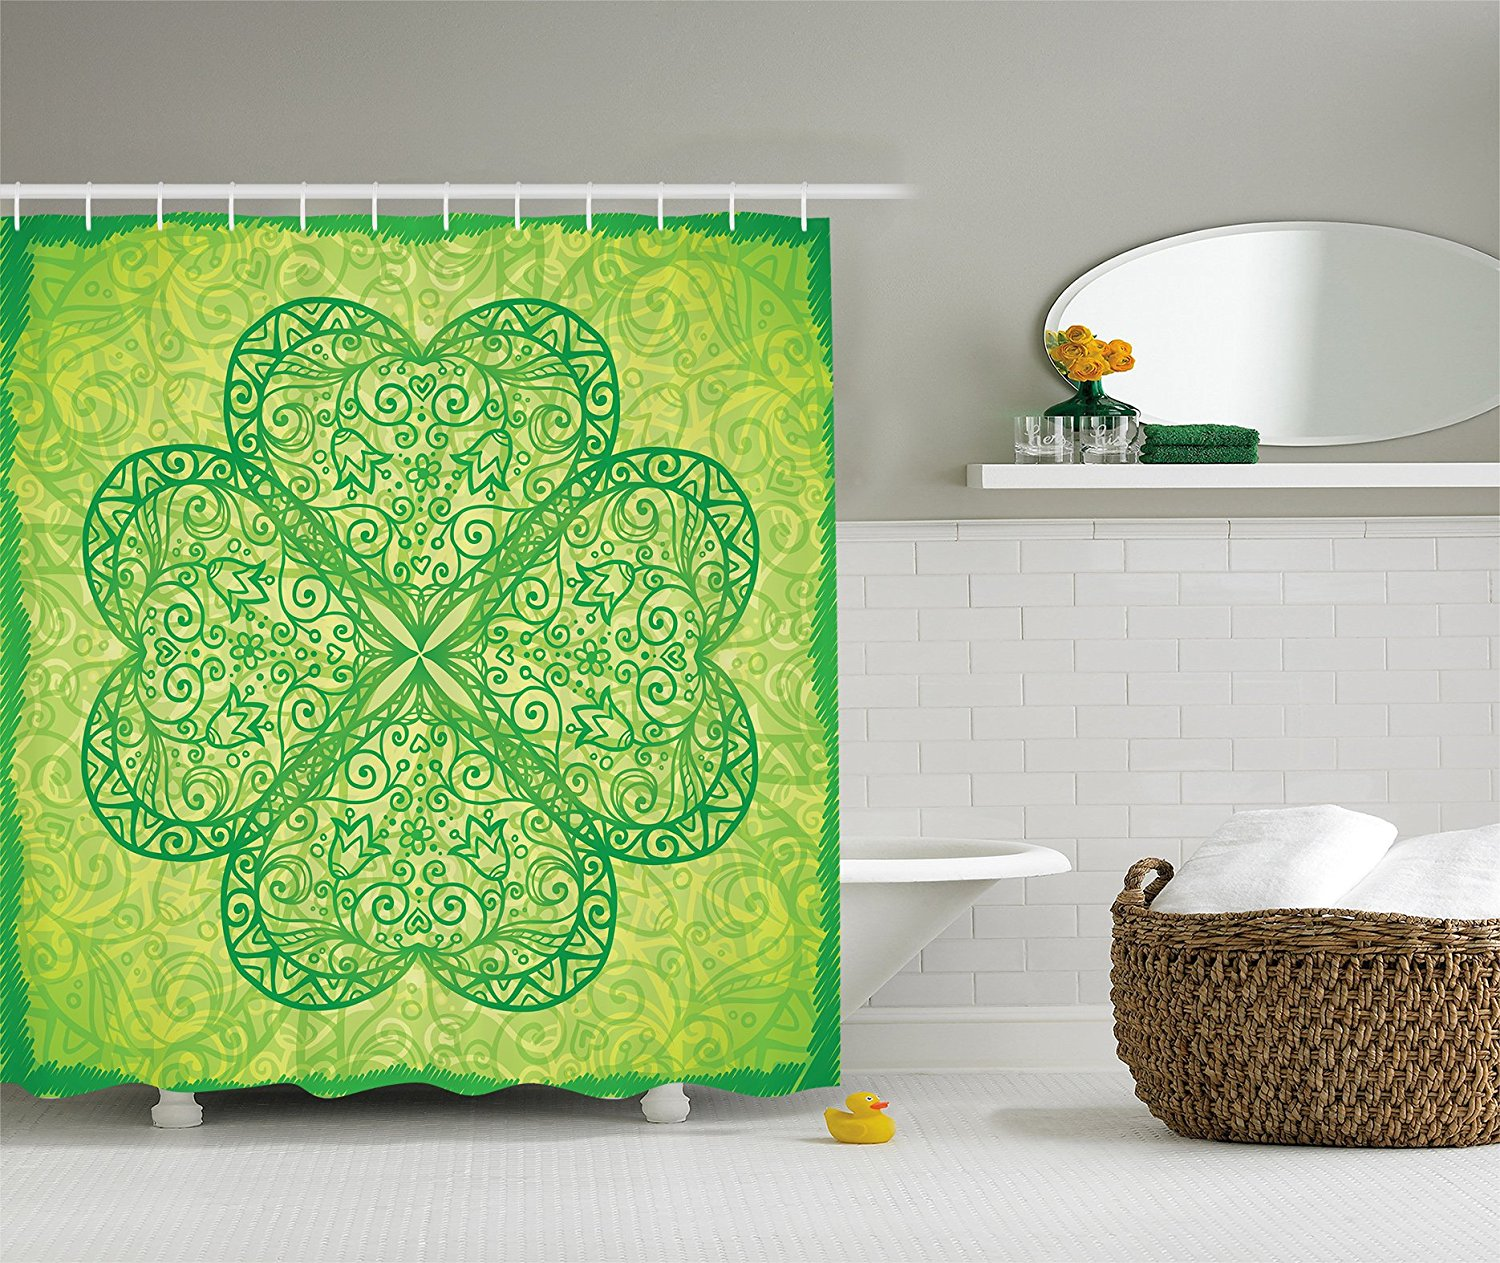 Green Irish Shamrock St. Patrick's Day Bathroom Decor